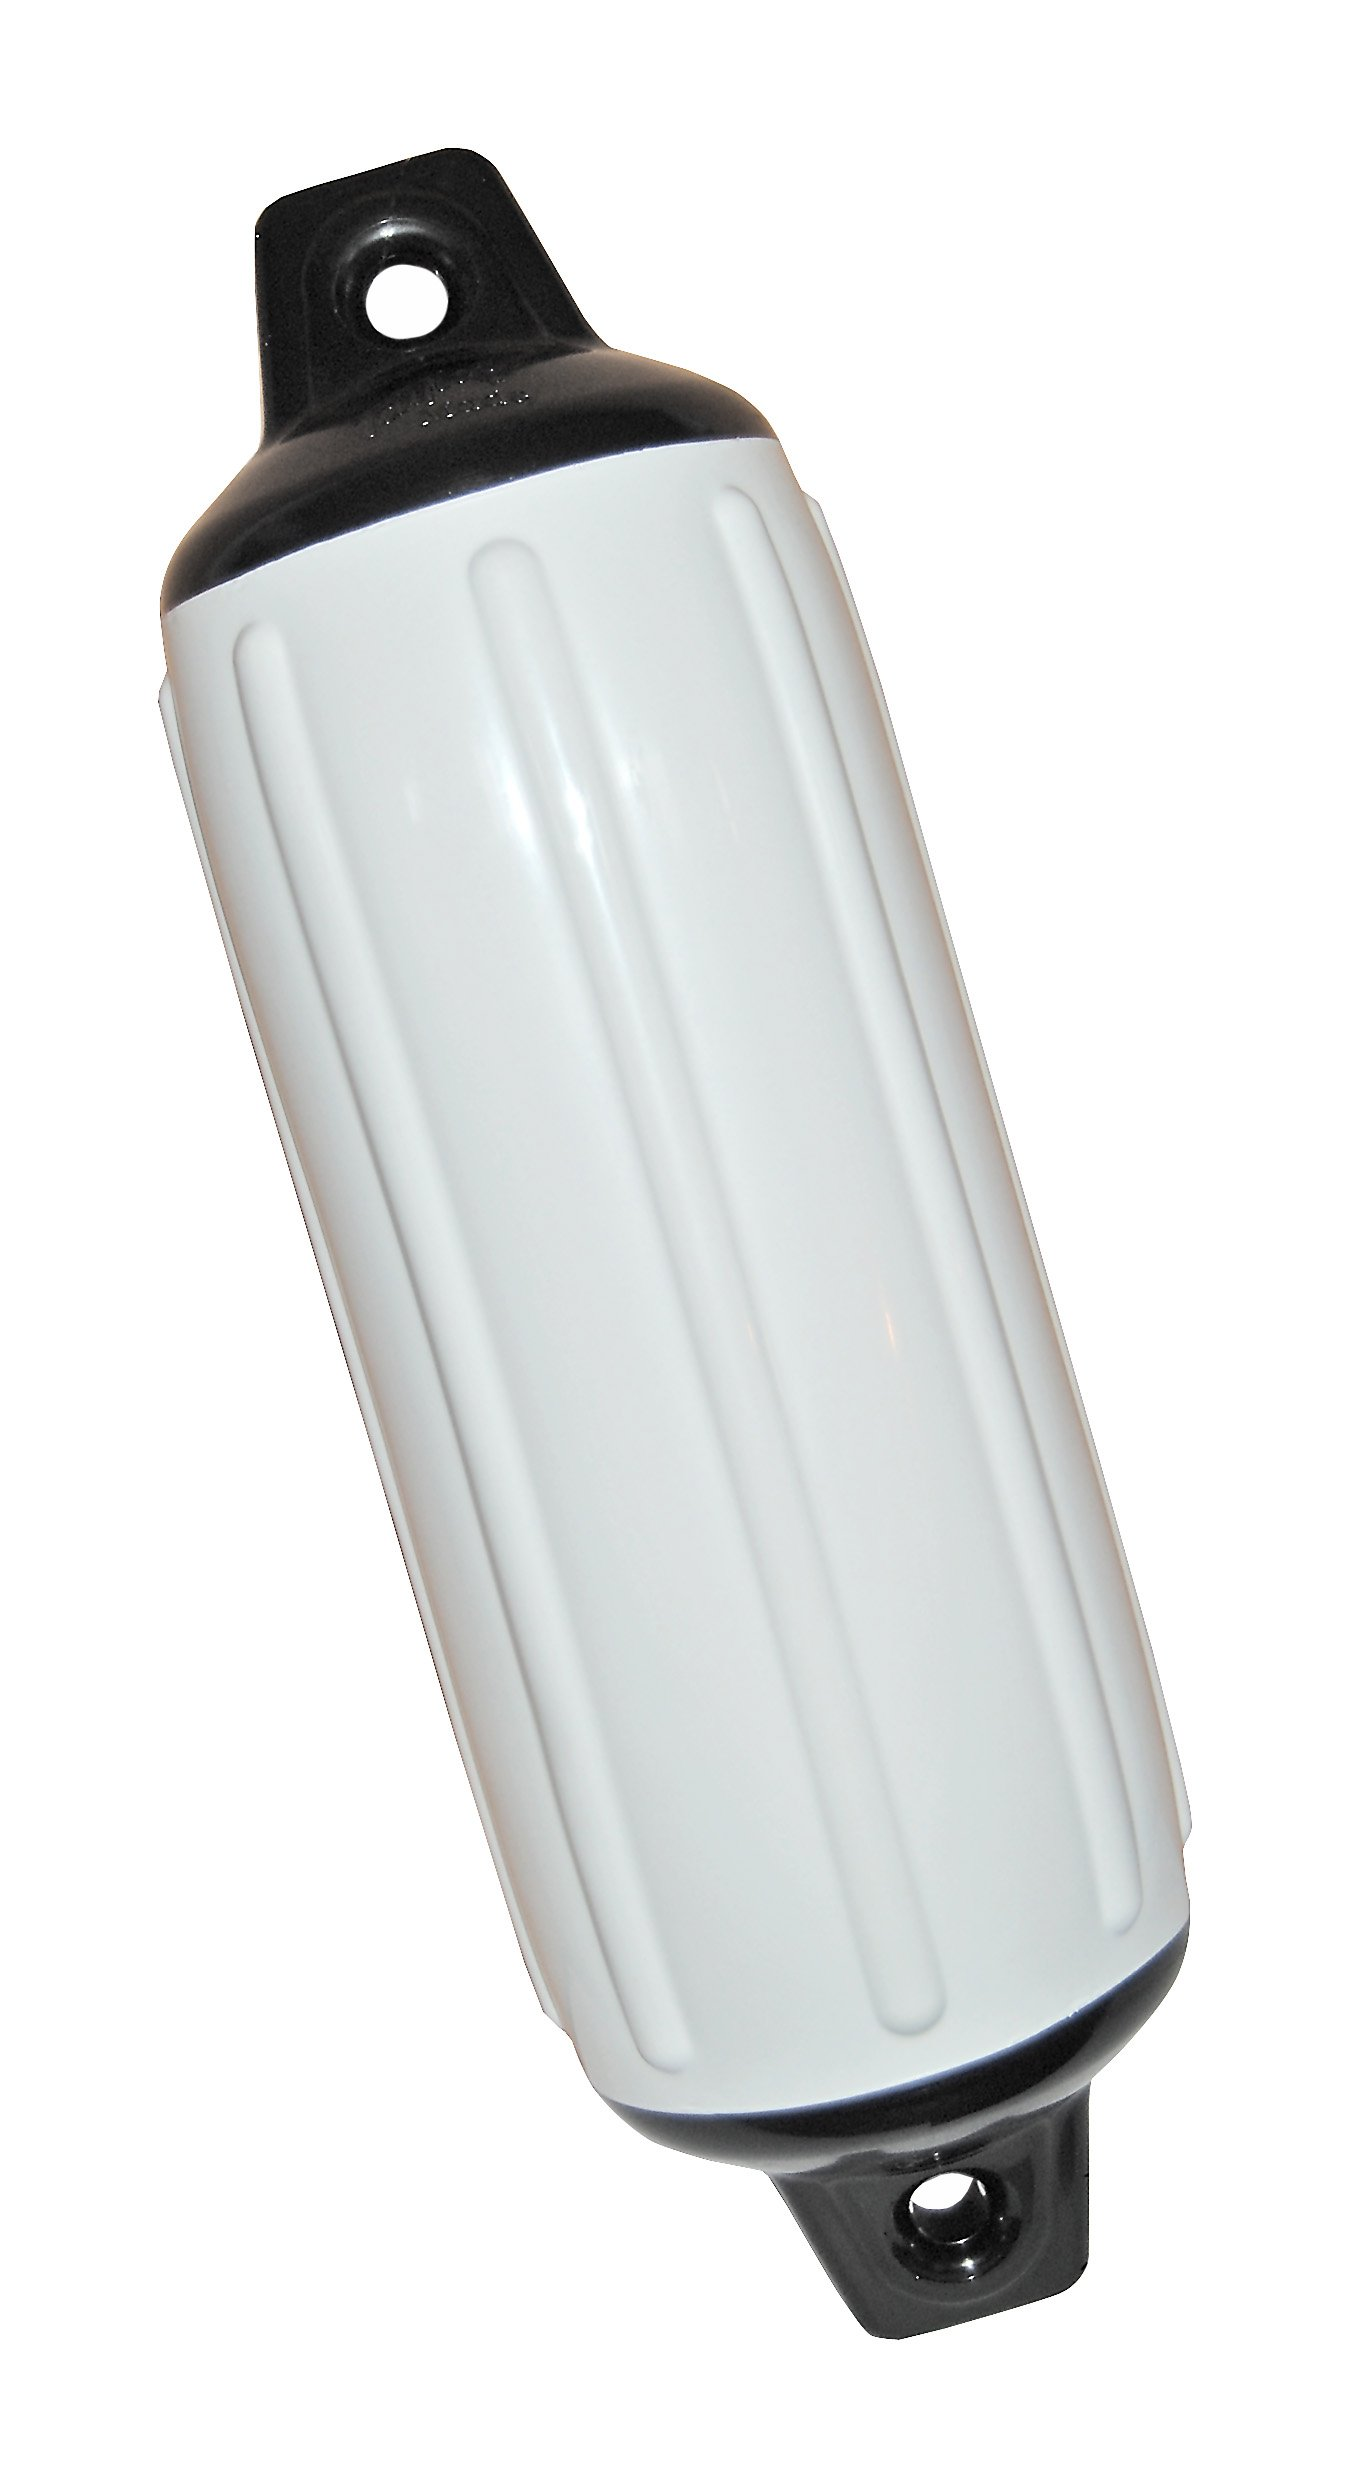 Taylor Made Products 950824 Super Gard Inflatable Vinyl Boat Fender, 8.5 x 26 inch, White by TaylorMade